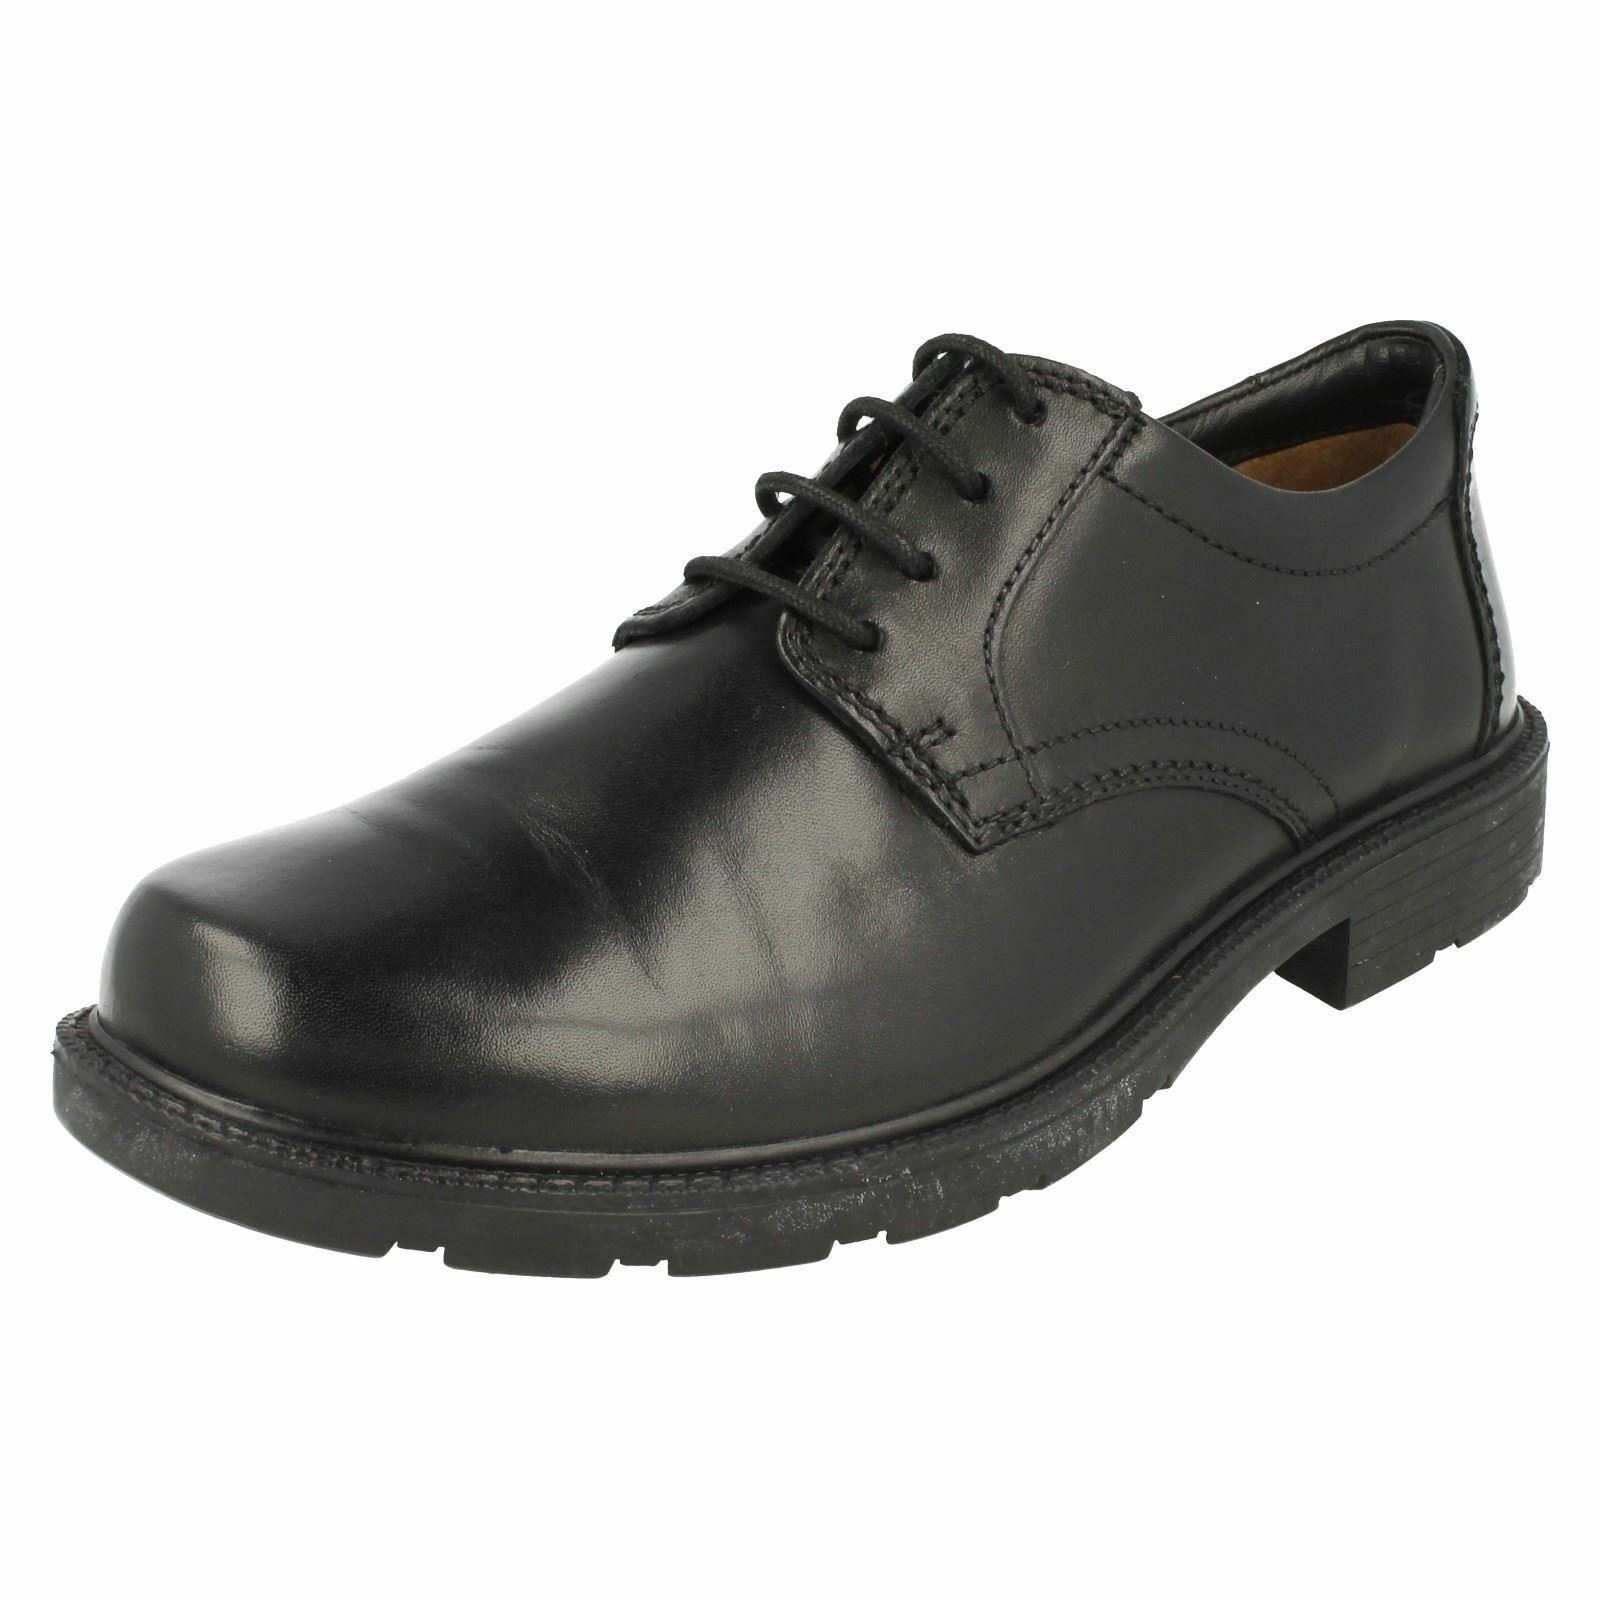 Mens Lair Watch G fitting black leather lace up shoes by Clarks